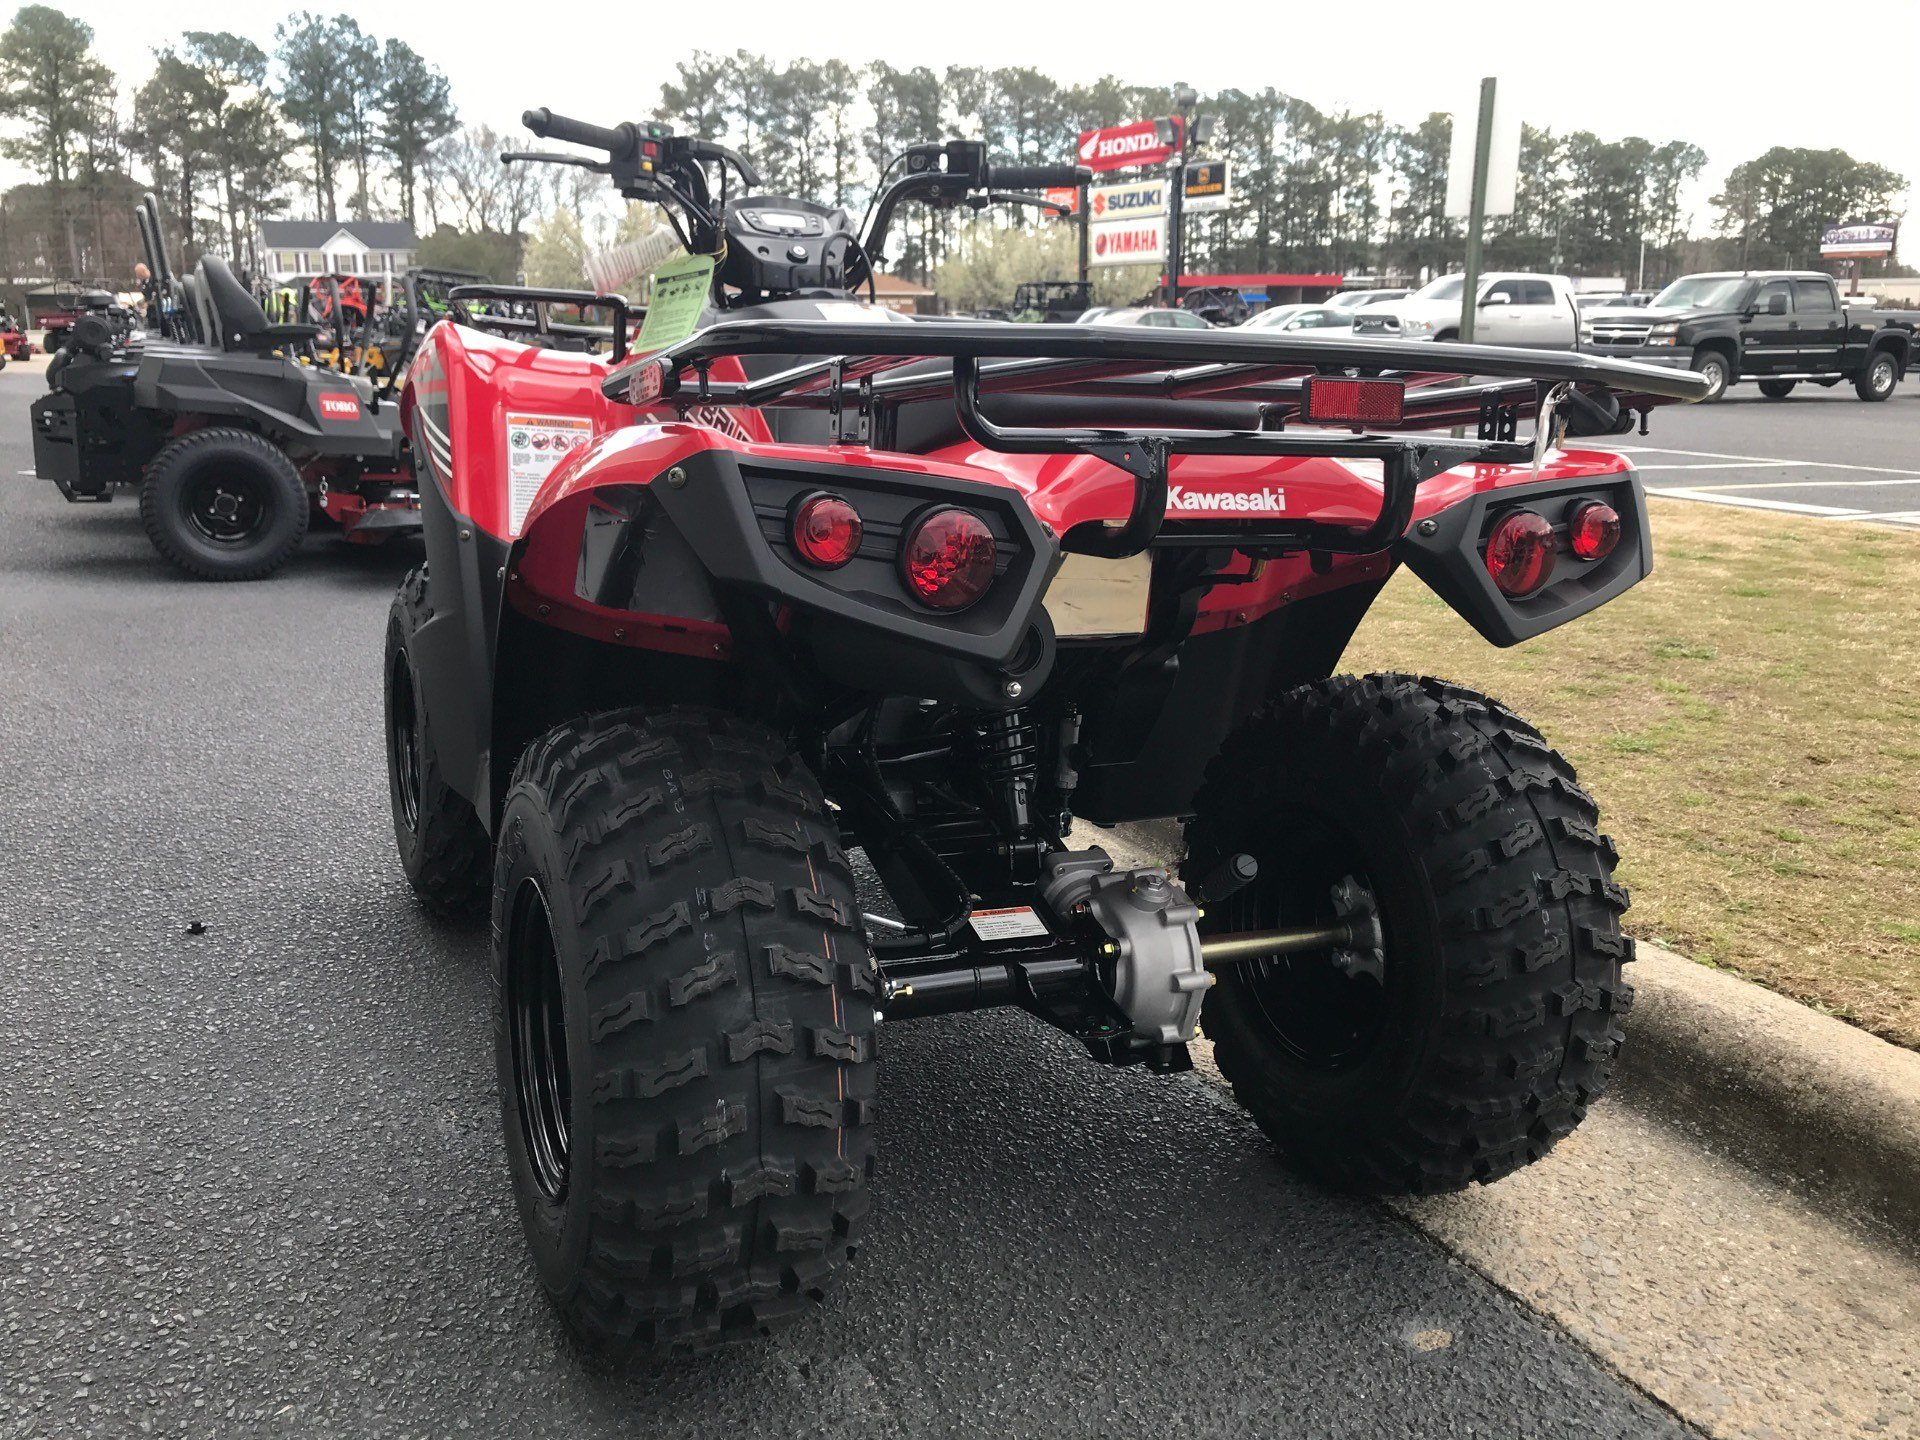 2020 Kawasaki Brute Force 300 in Greenville, North Carolina - Photo 9